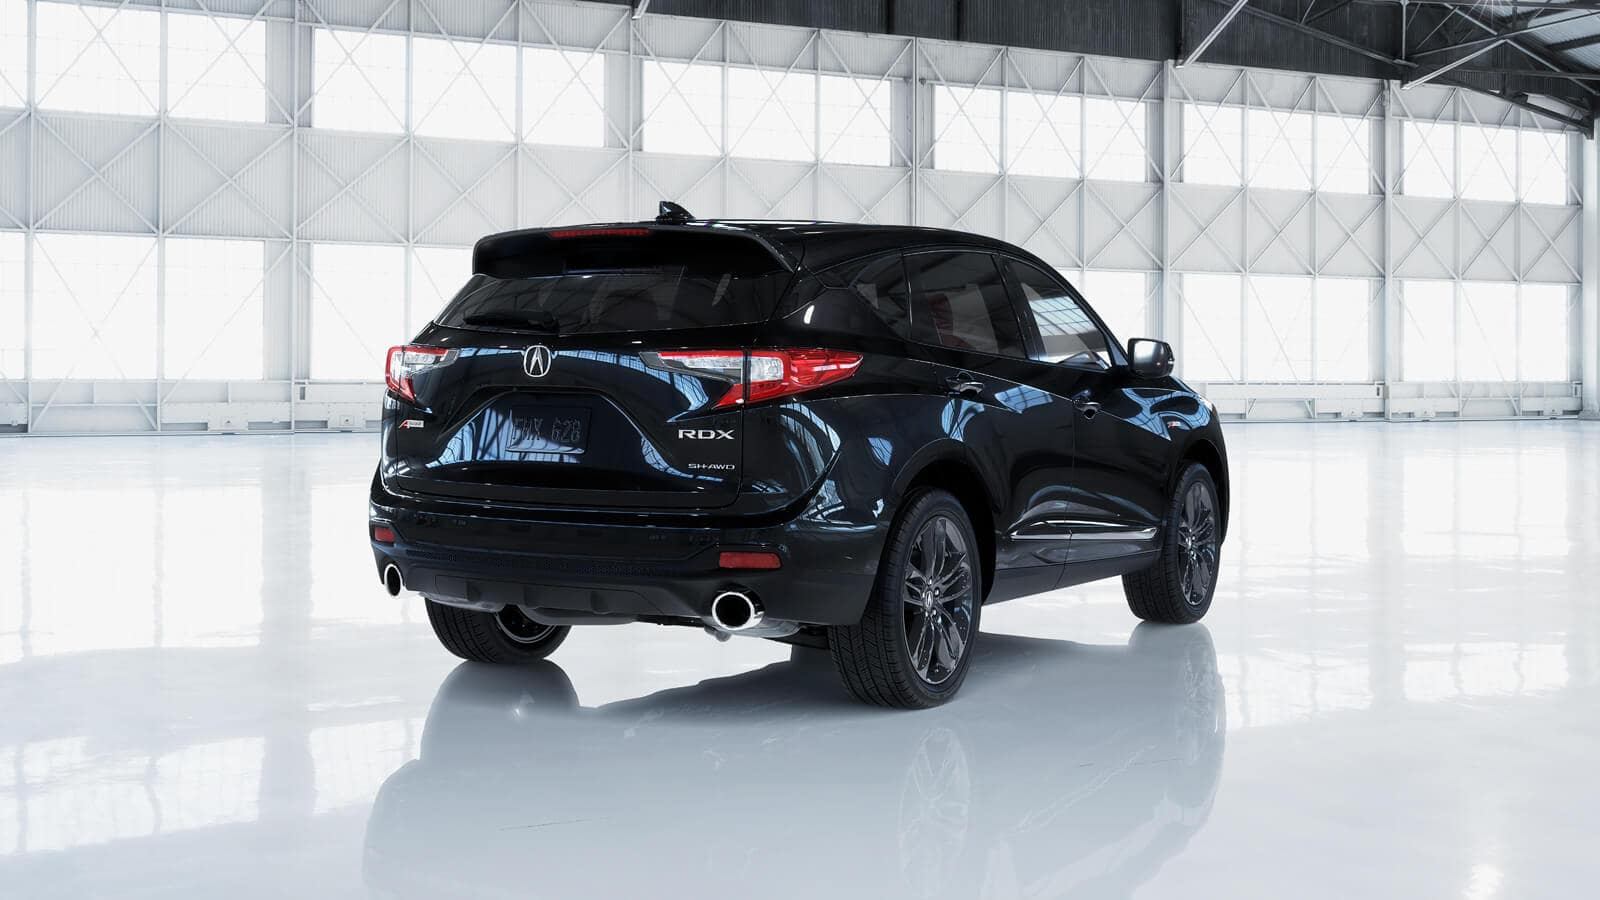 2020 Acura Rdx Luxury Crossover Suv Michigan Acura Dealers